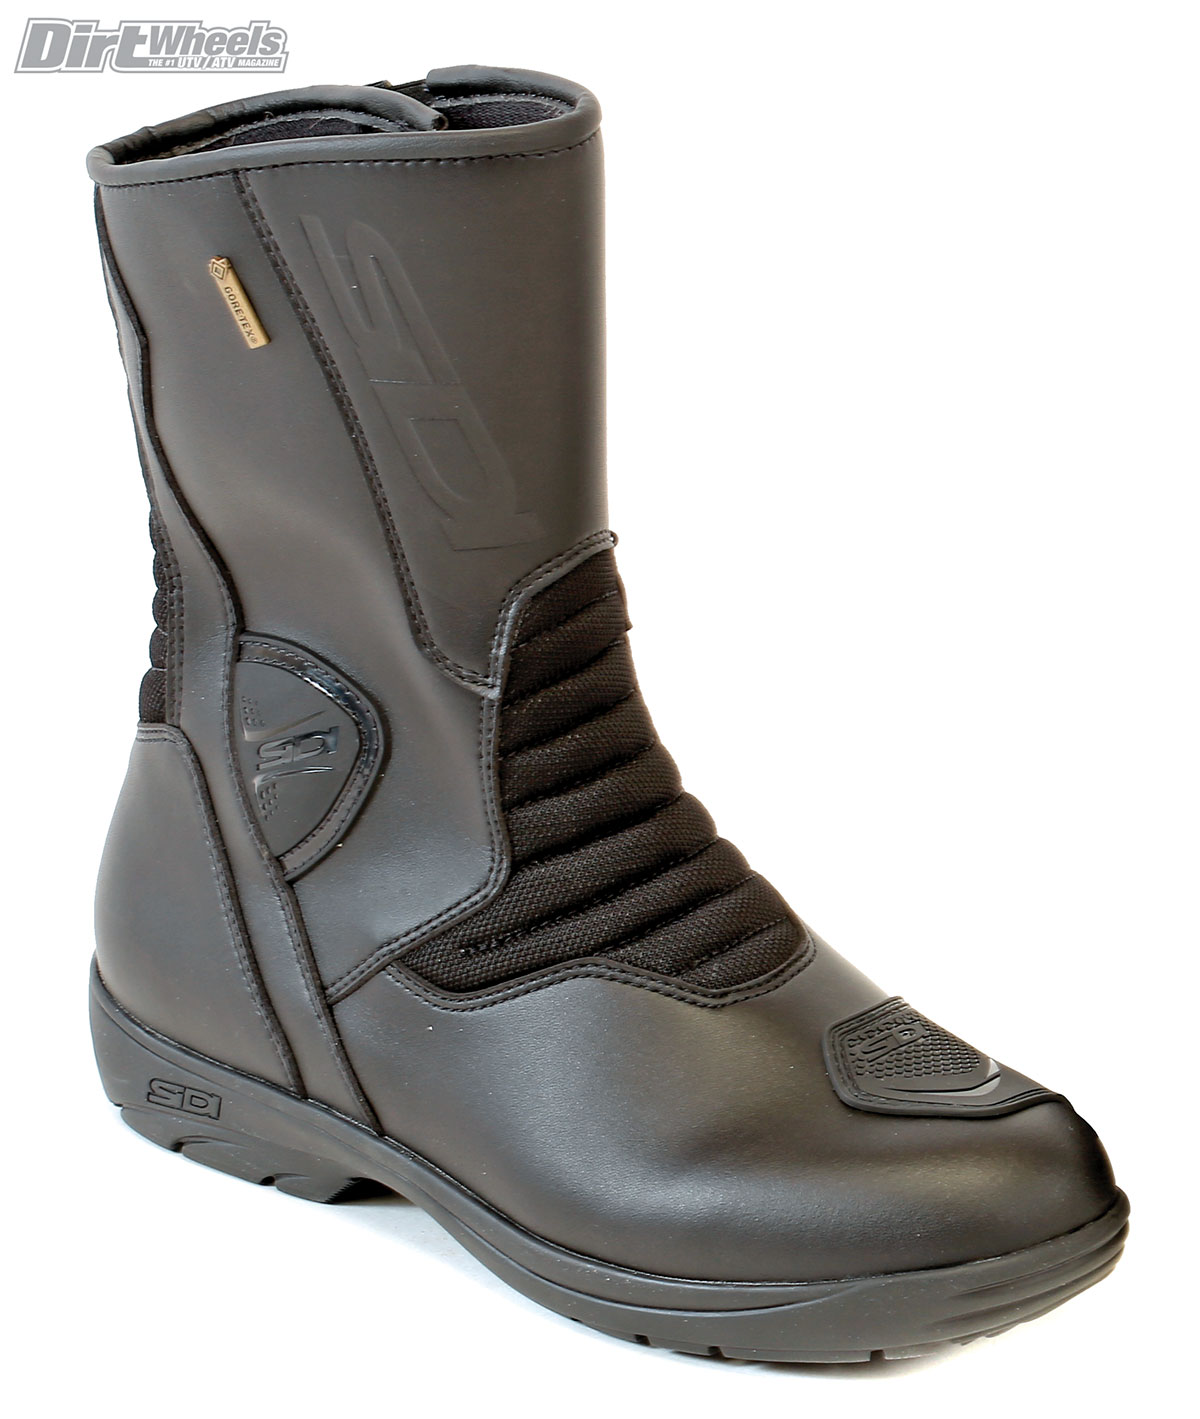 The Gavia from Sidi is made from waterproof and breathable Gore-Tex. The boot is flexible enough to drive a UTV and comfortable enough to walk in.